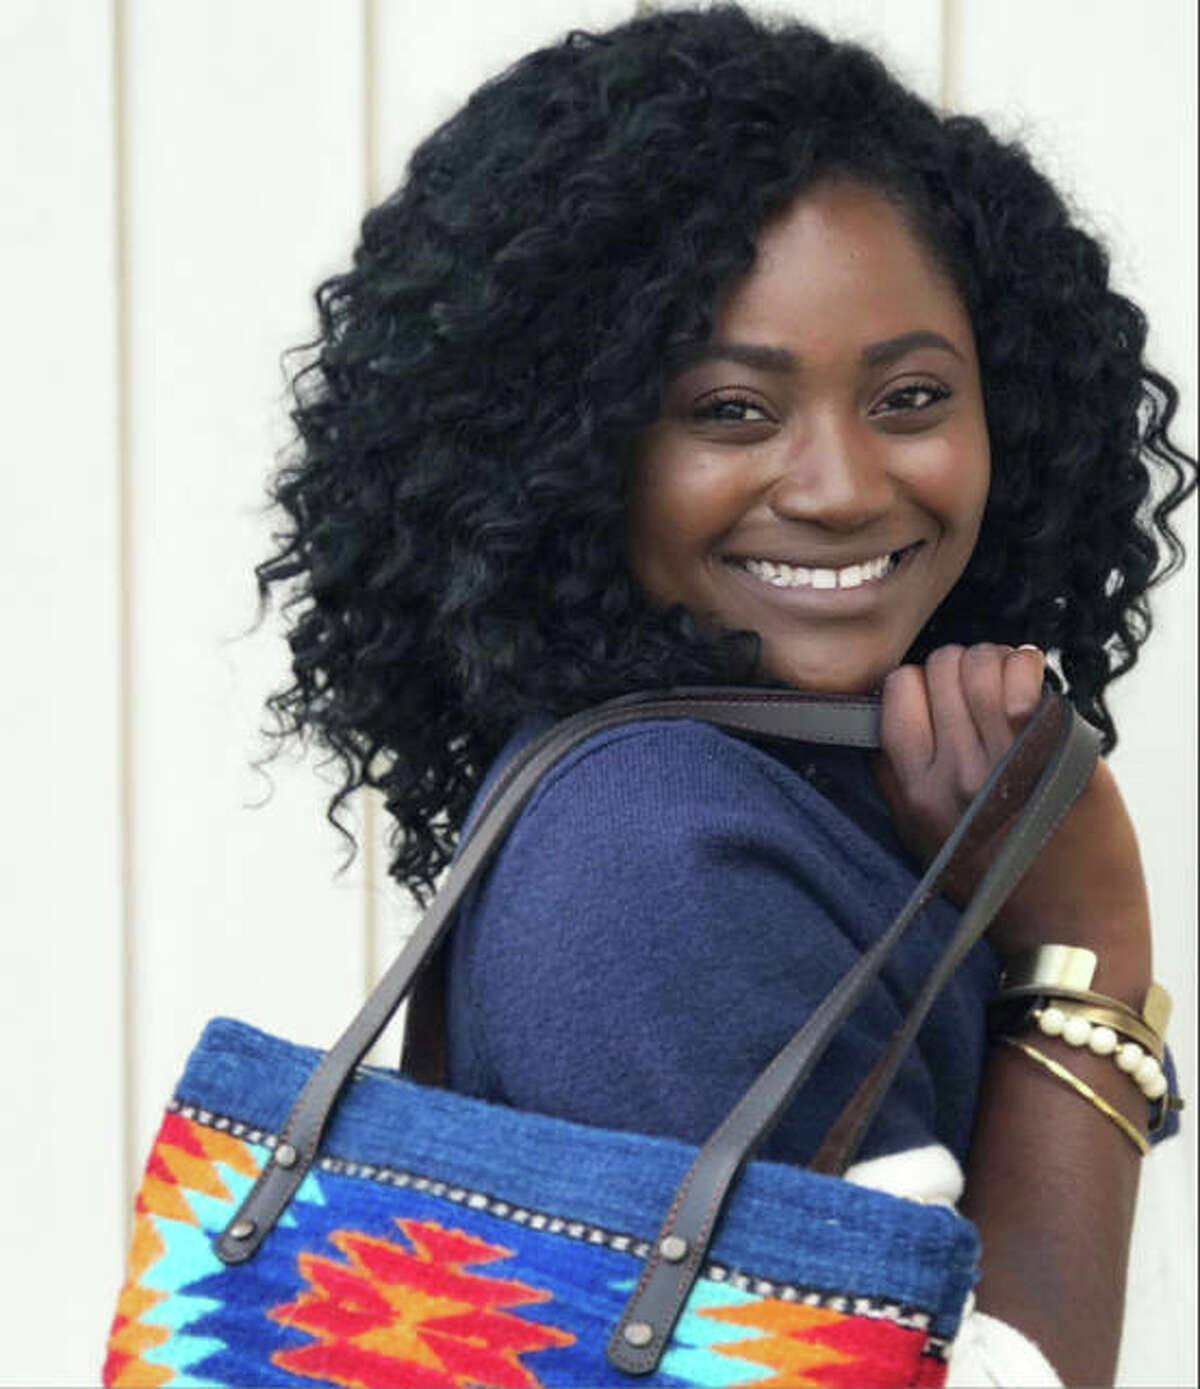 Eliana McBee, 22, a native of Haiti who lives with her husband in Godfrey, near her parents, Natalie and Michael Runyon, and nine siblings, two of whom the Runyons also adopted from Haiti, shows a bag made by a woman-owned cottage industry in Oaxaca, Mexico, and bracelets from Branded Collective, in Nashville, Tennessee, an organization that works with victims of human trafficking, and Grain of Rice Project, in Kenya. Every sale helps women business owners stay employed and out of poverty.